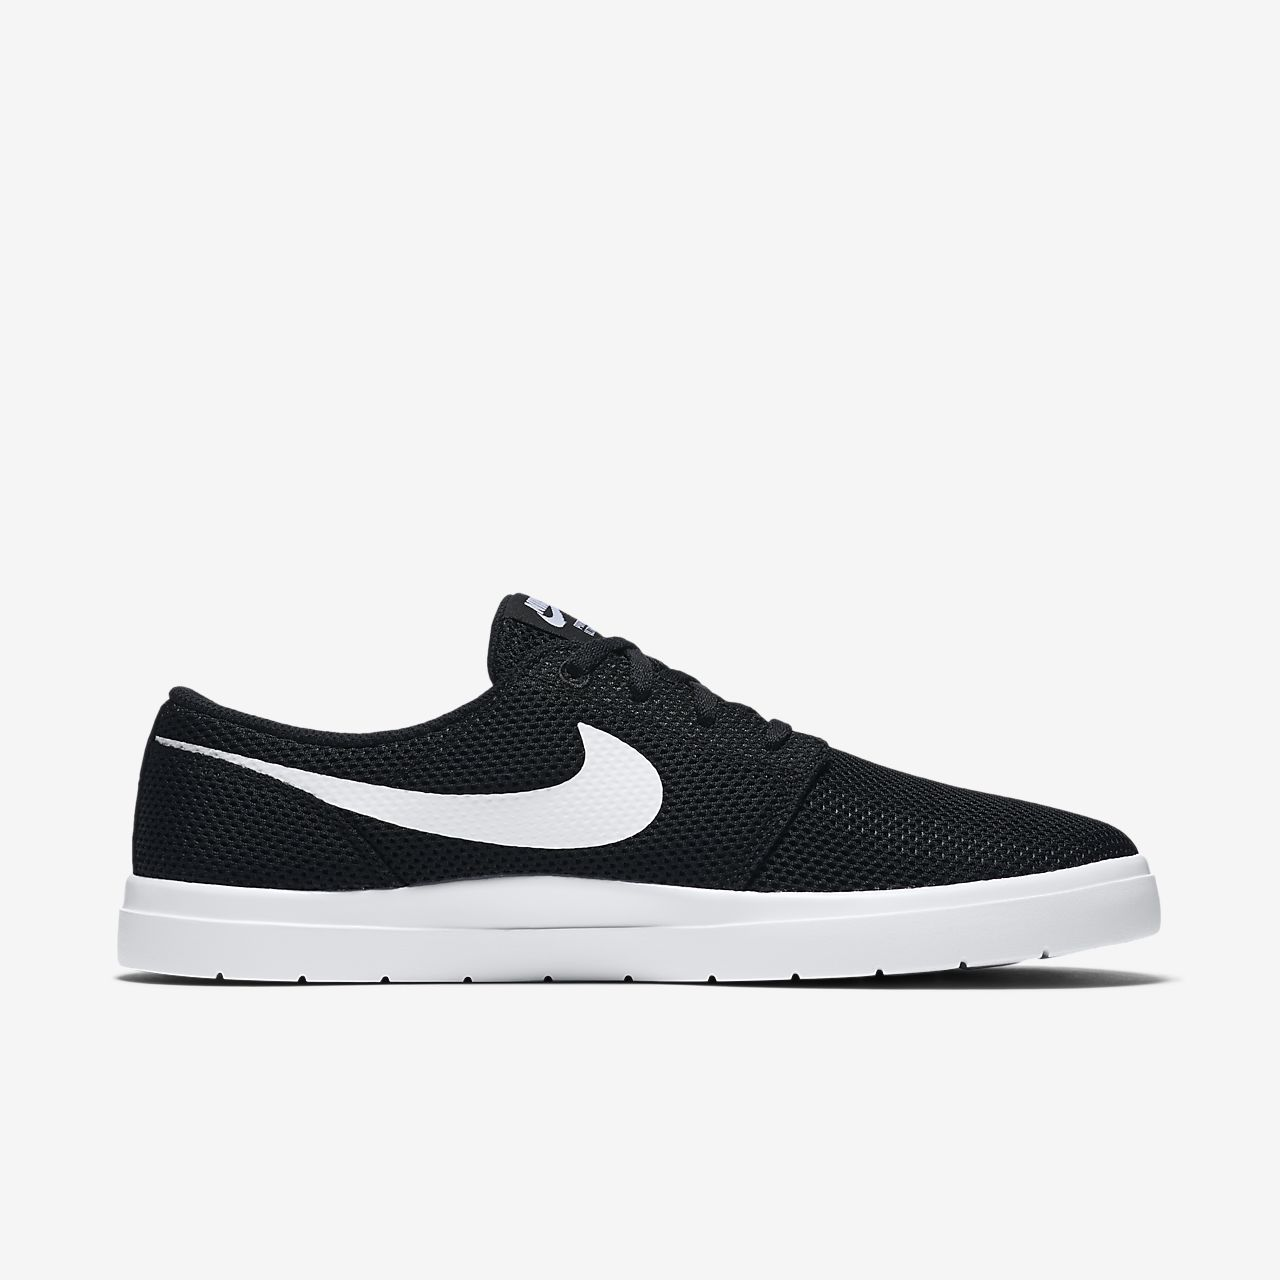 ... Nike SB Portmore II Ultralight Men's Skateboarding Shoe